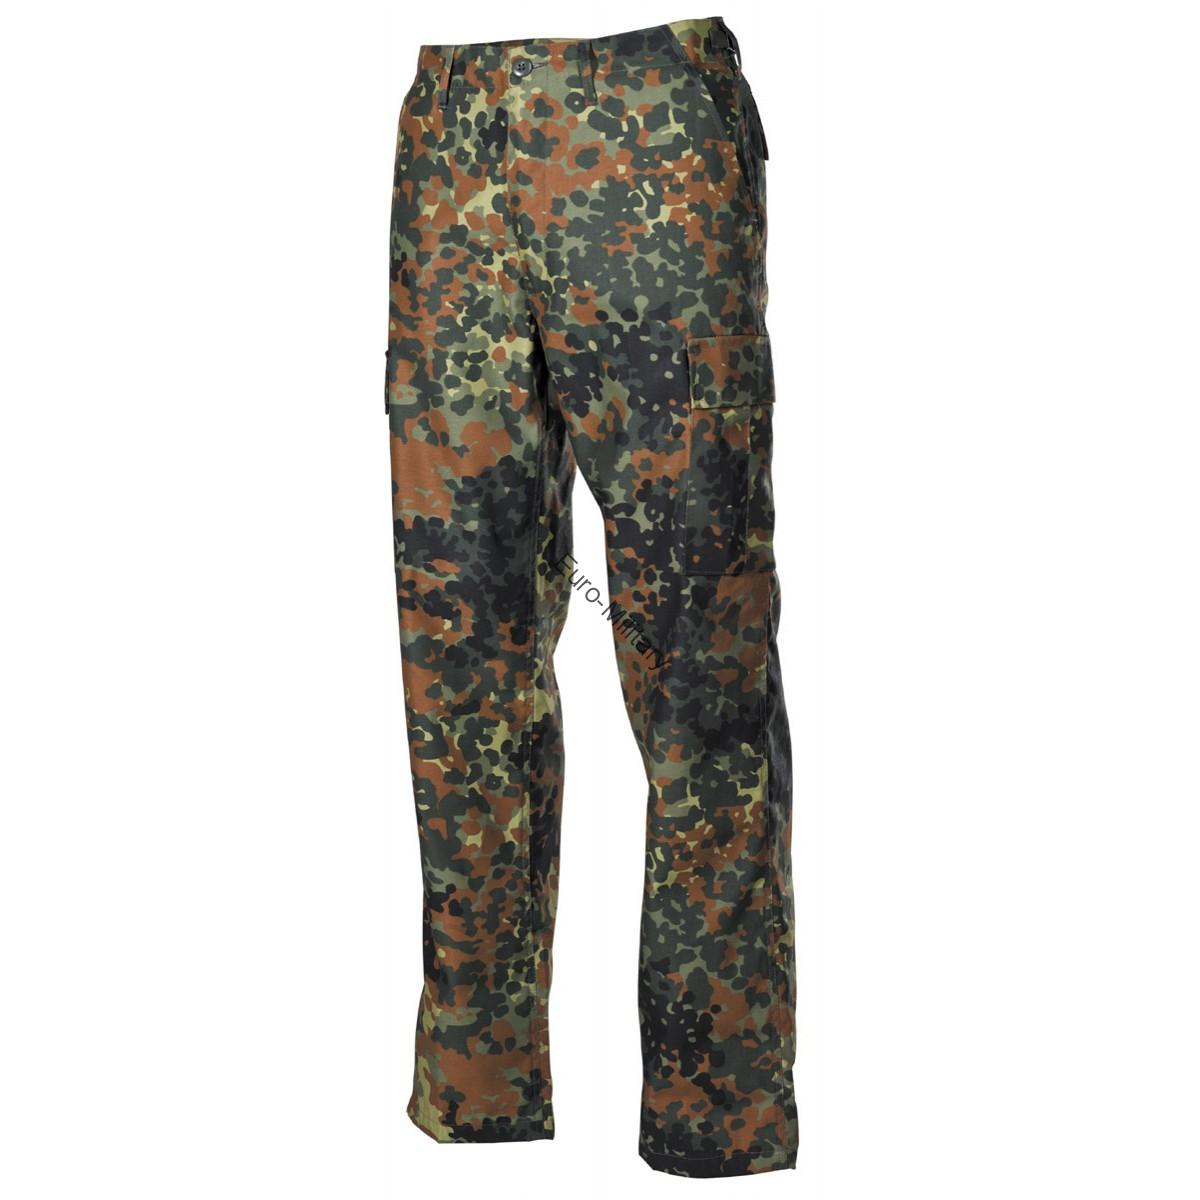 BW German Army Flectarn Camo Pattern BDU Field Pants